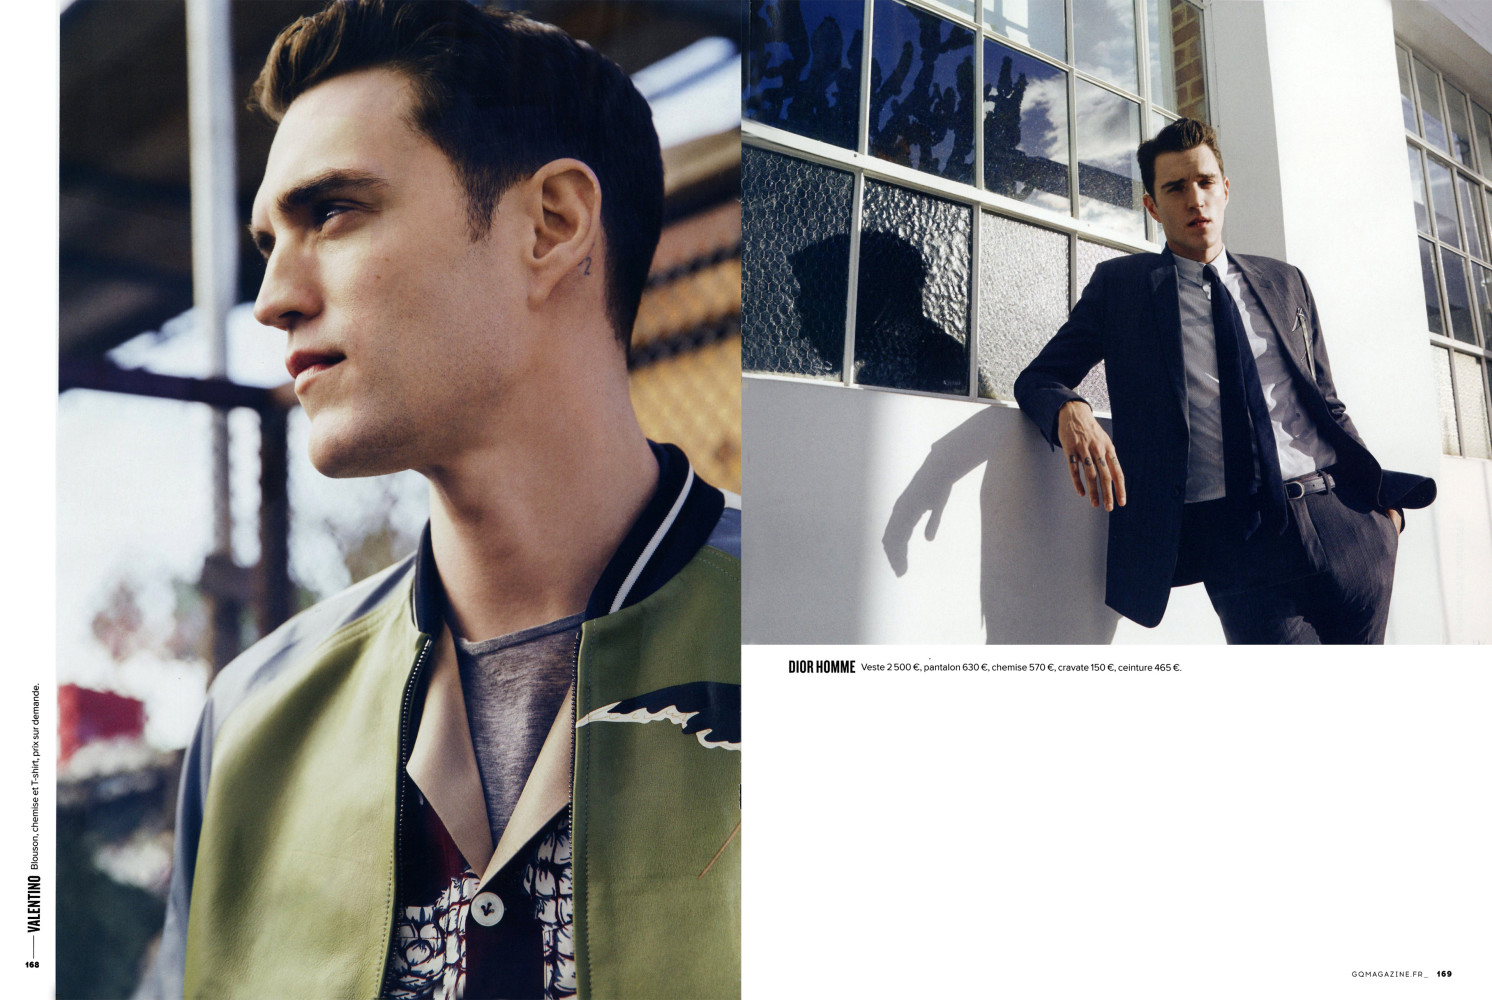 Josh Beech for QG France March 2016 Issue